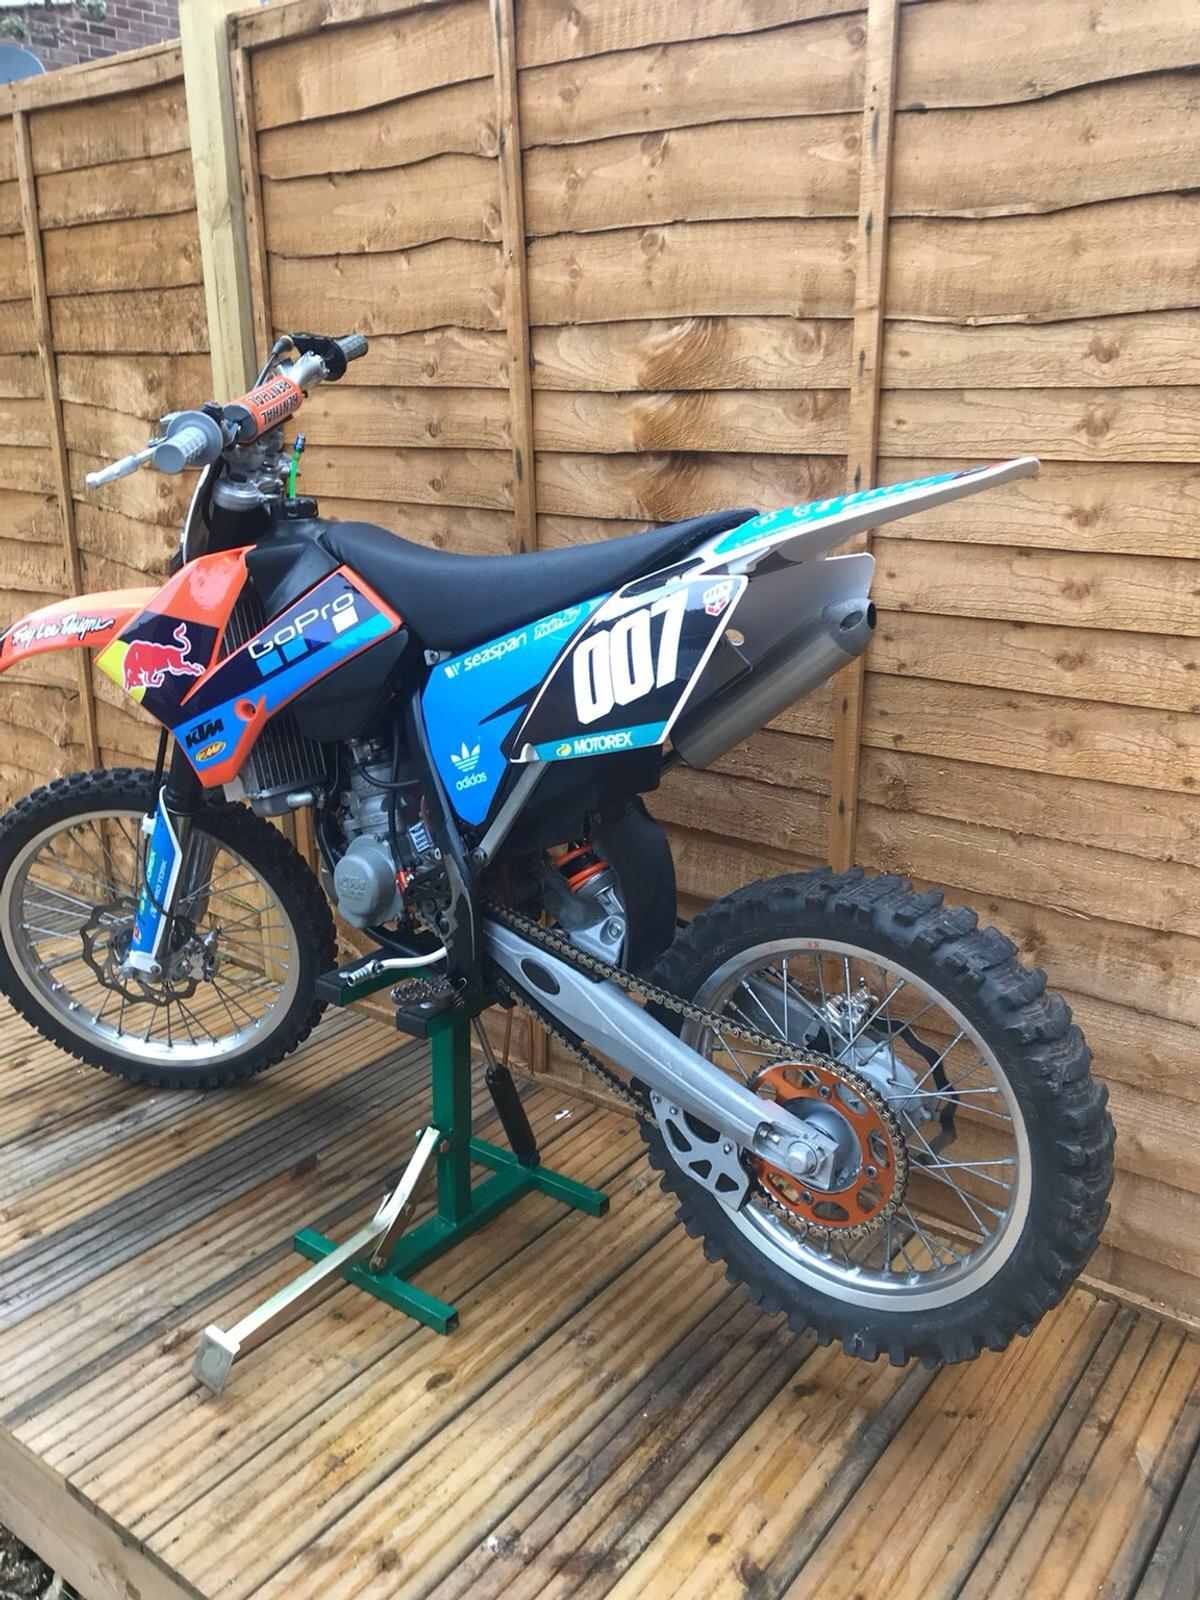 Ktm 85 sx full rebuild mint in Hove for £1,300 00 for sale